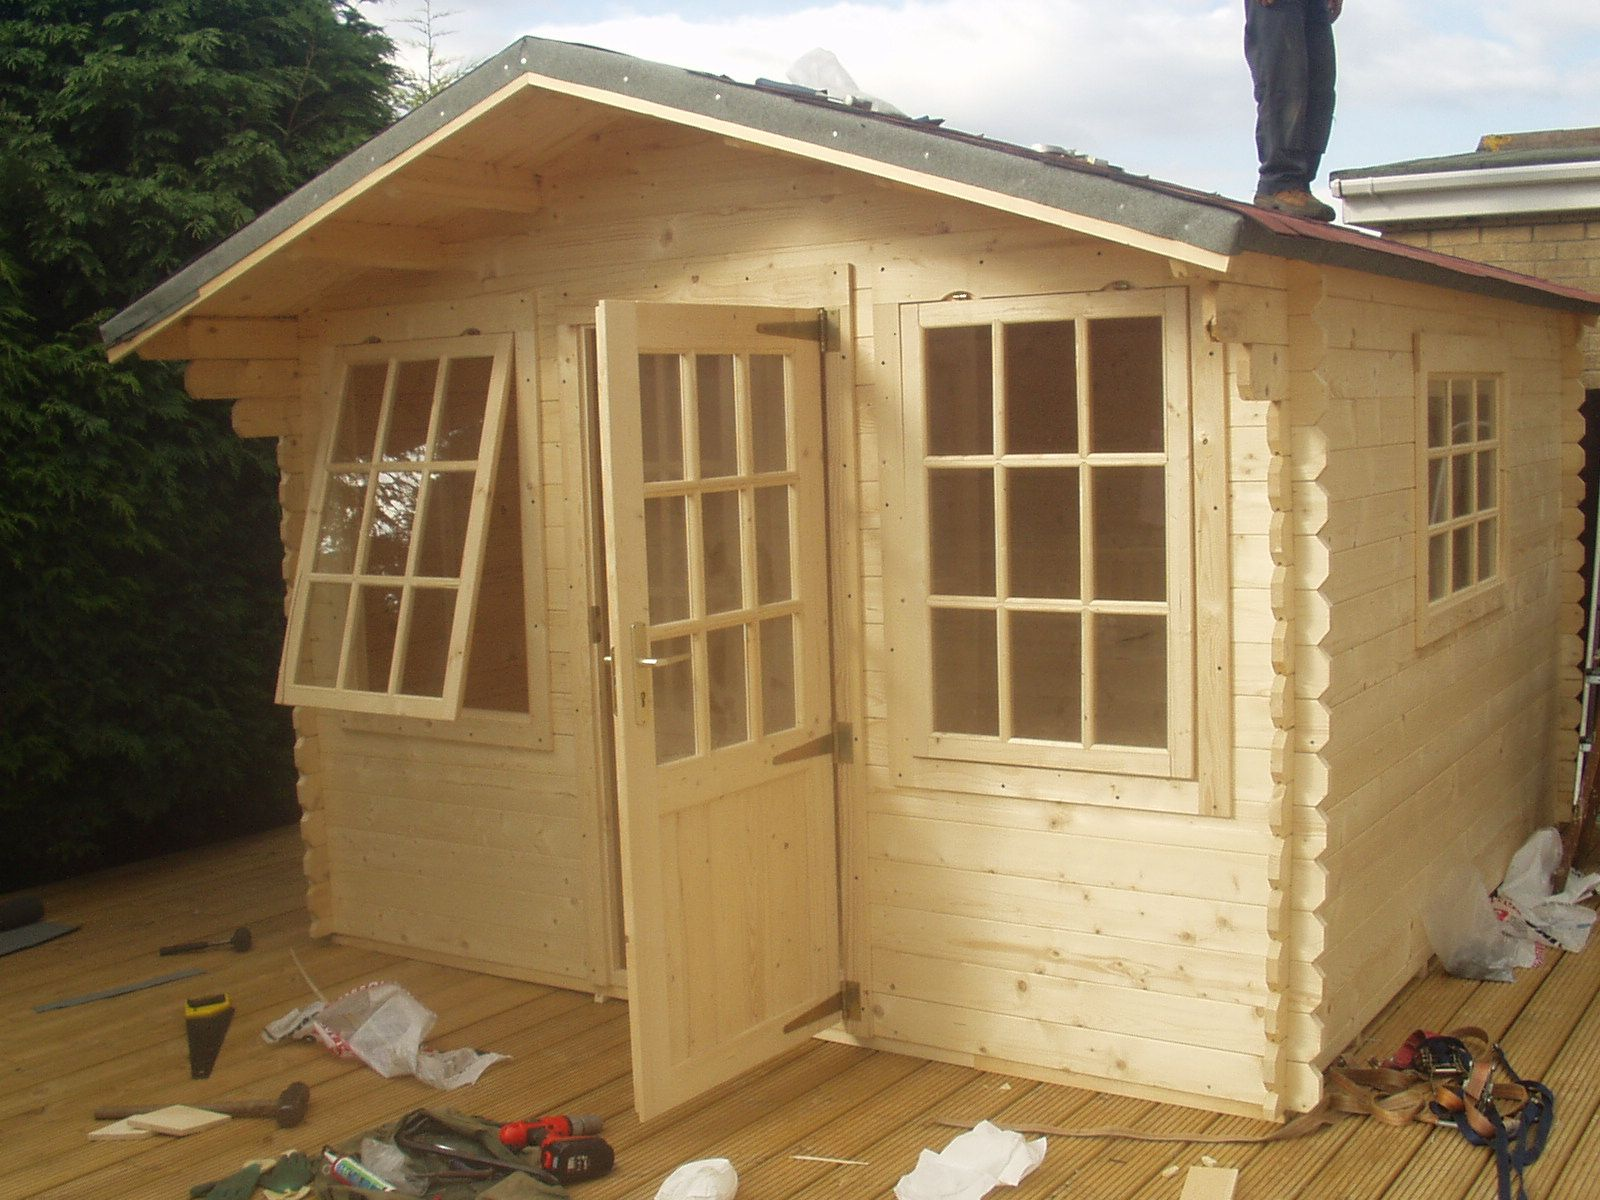 Genial Shed Plans How To: How You Can Build Cheap Sheds Yourself At A Fraction Of  The Cost